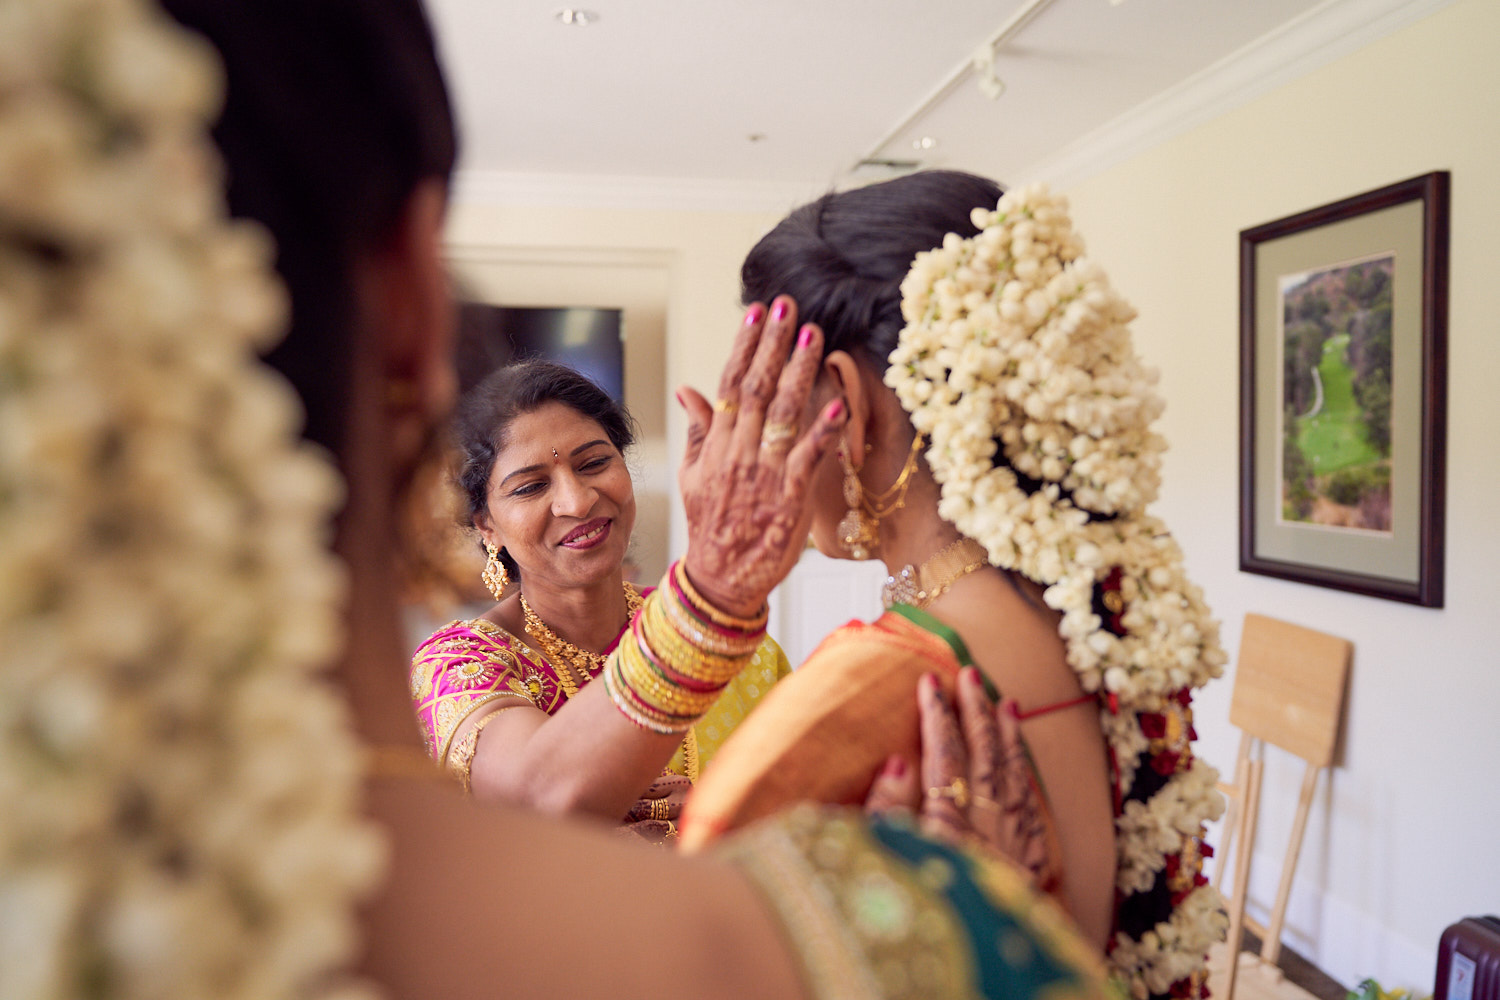 south-indian-wedding-ceremony-photography-by-afewgoodclicks-net-in-saratoga 66.jpg